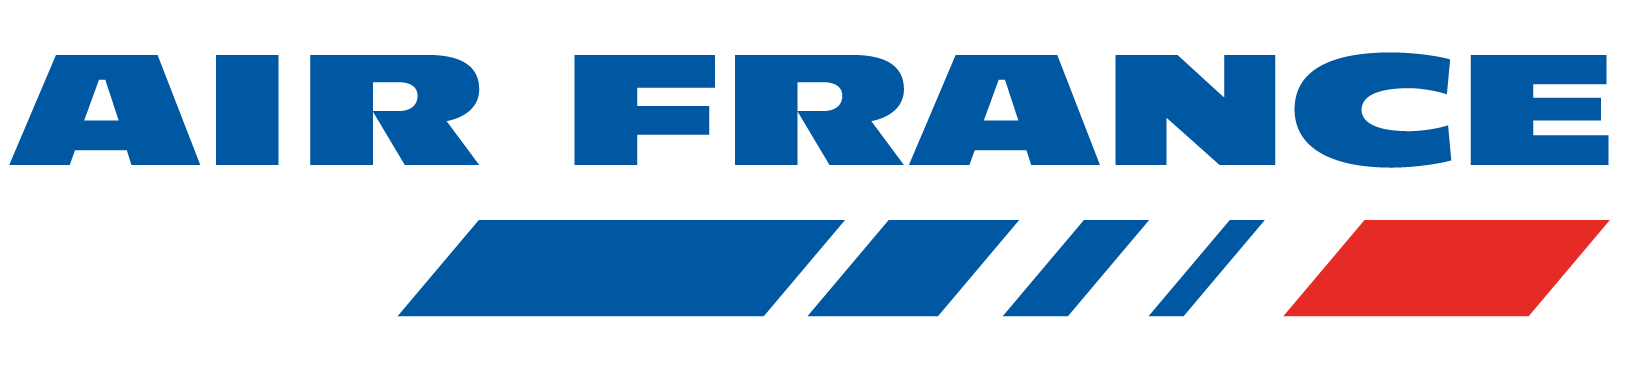 Air France Logo - Air France – ZeCraft